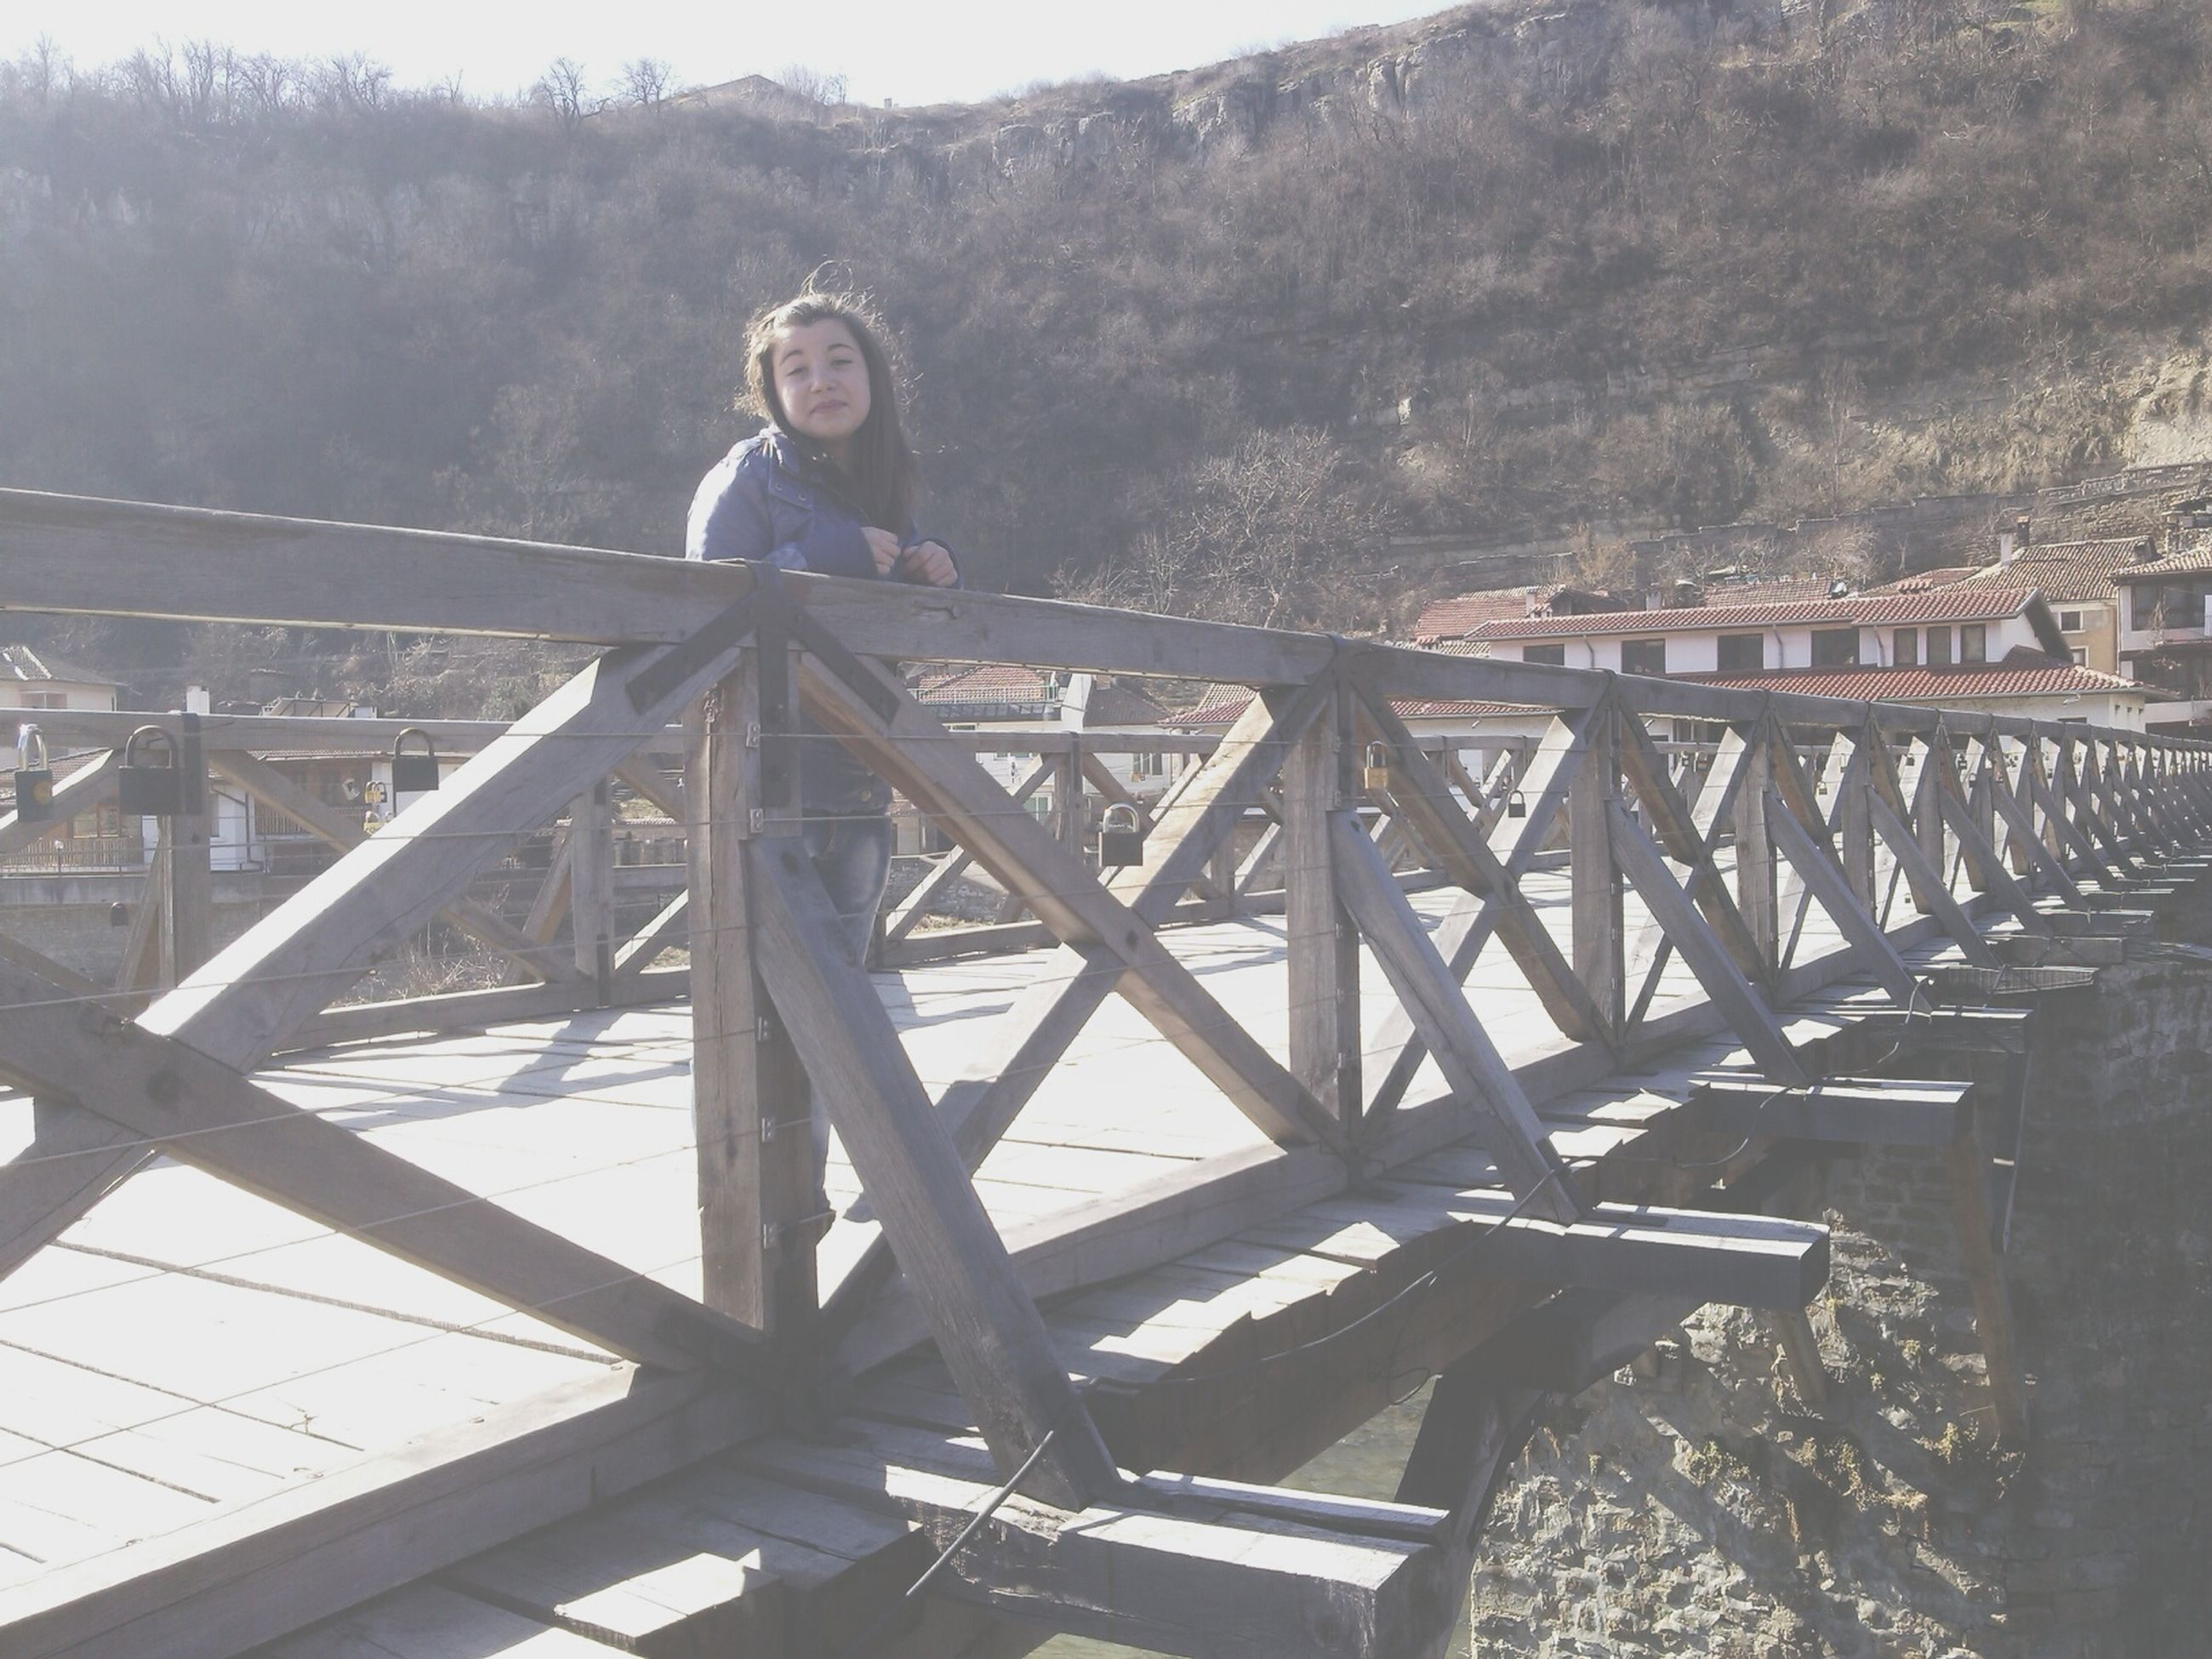 lifestyles, leisure activity, young adult, full length, casual clothing, person, railing, standing, bridge - man made structure, connection, tree, built structure, young women, portrait, looking at camera, outdoors, day